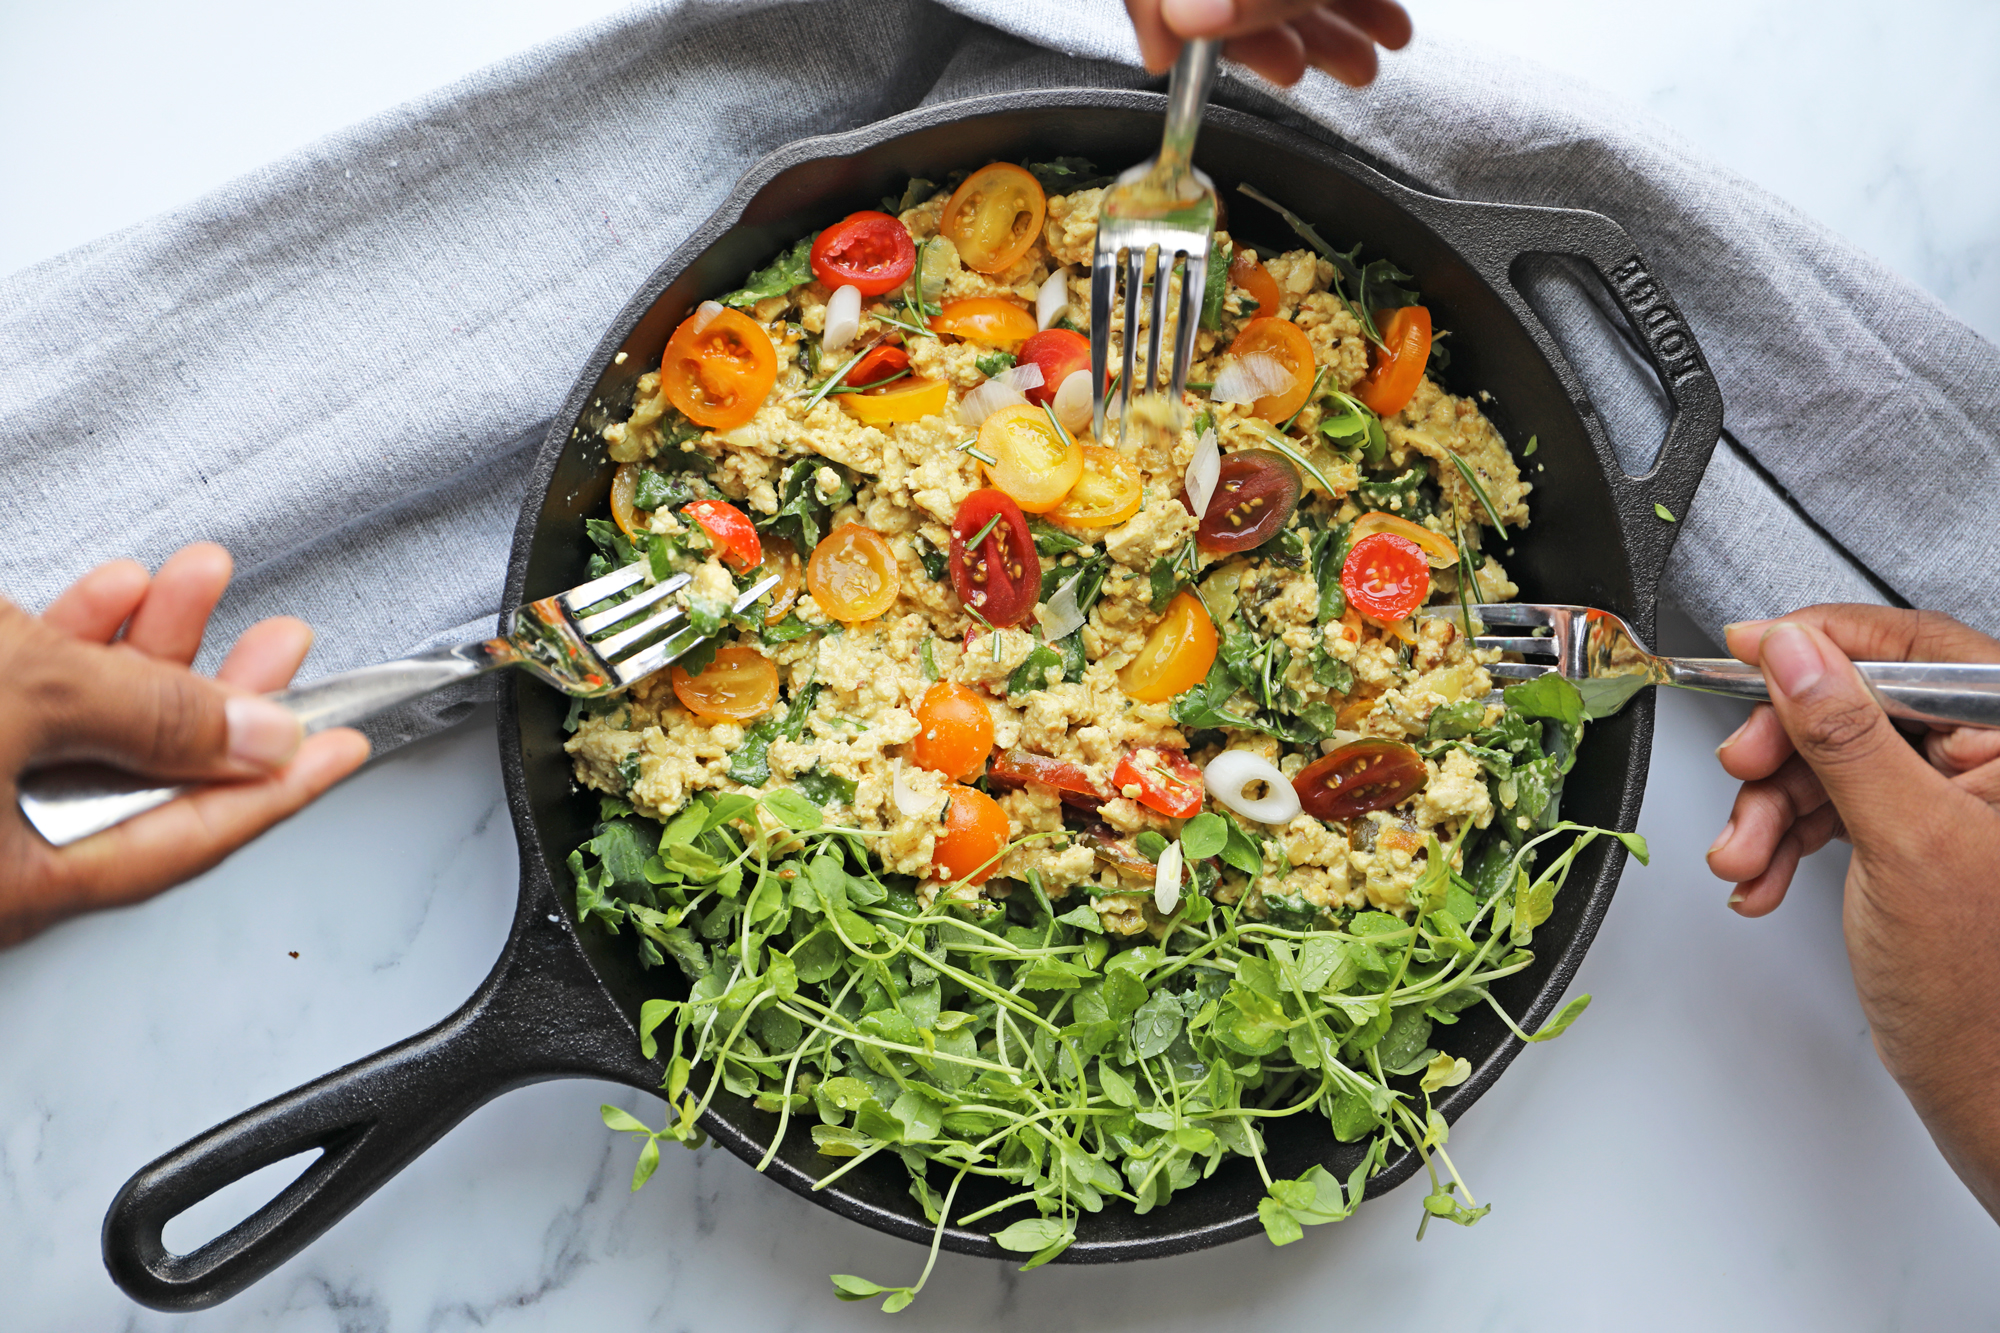 Cast Iron Skillet with Tofu Scrambled Eggs Recipe